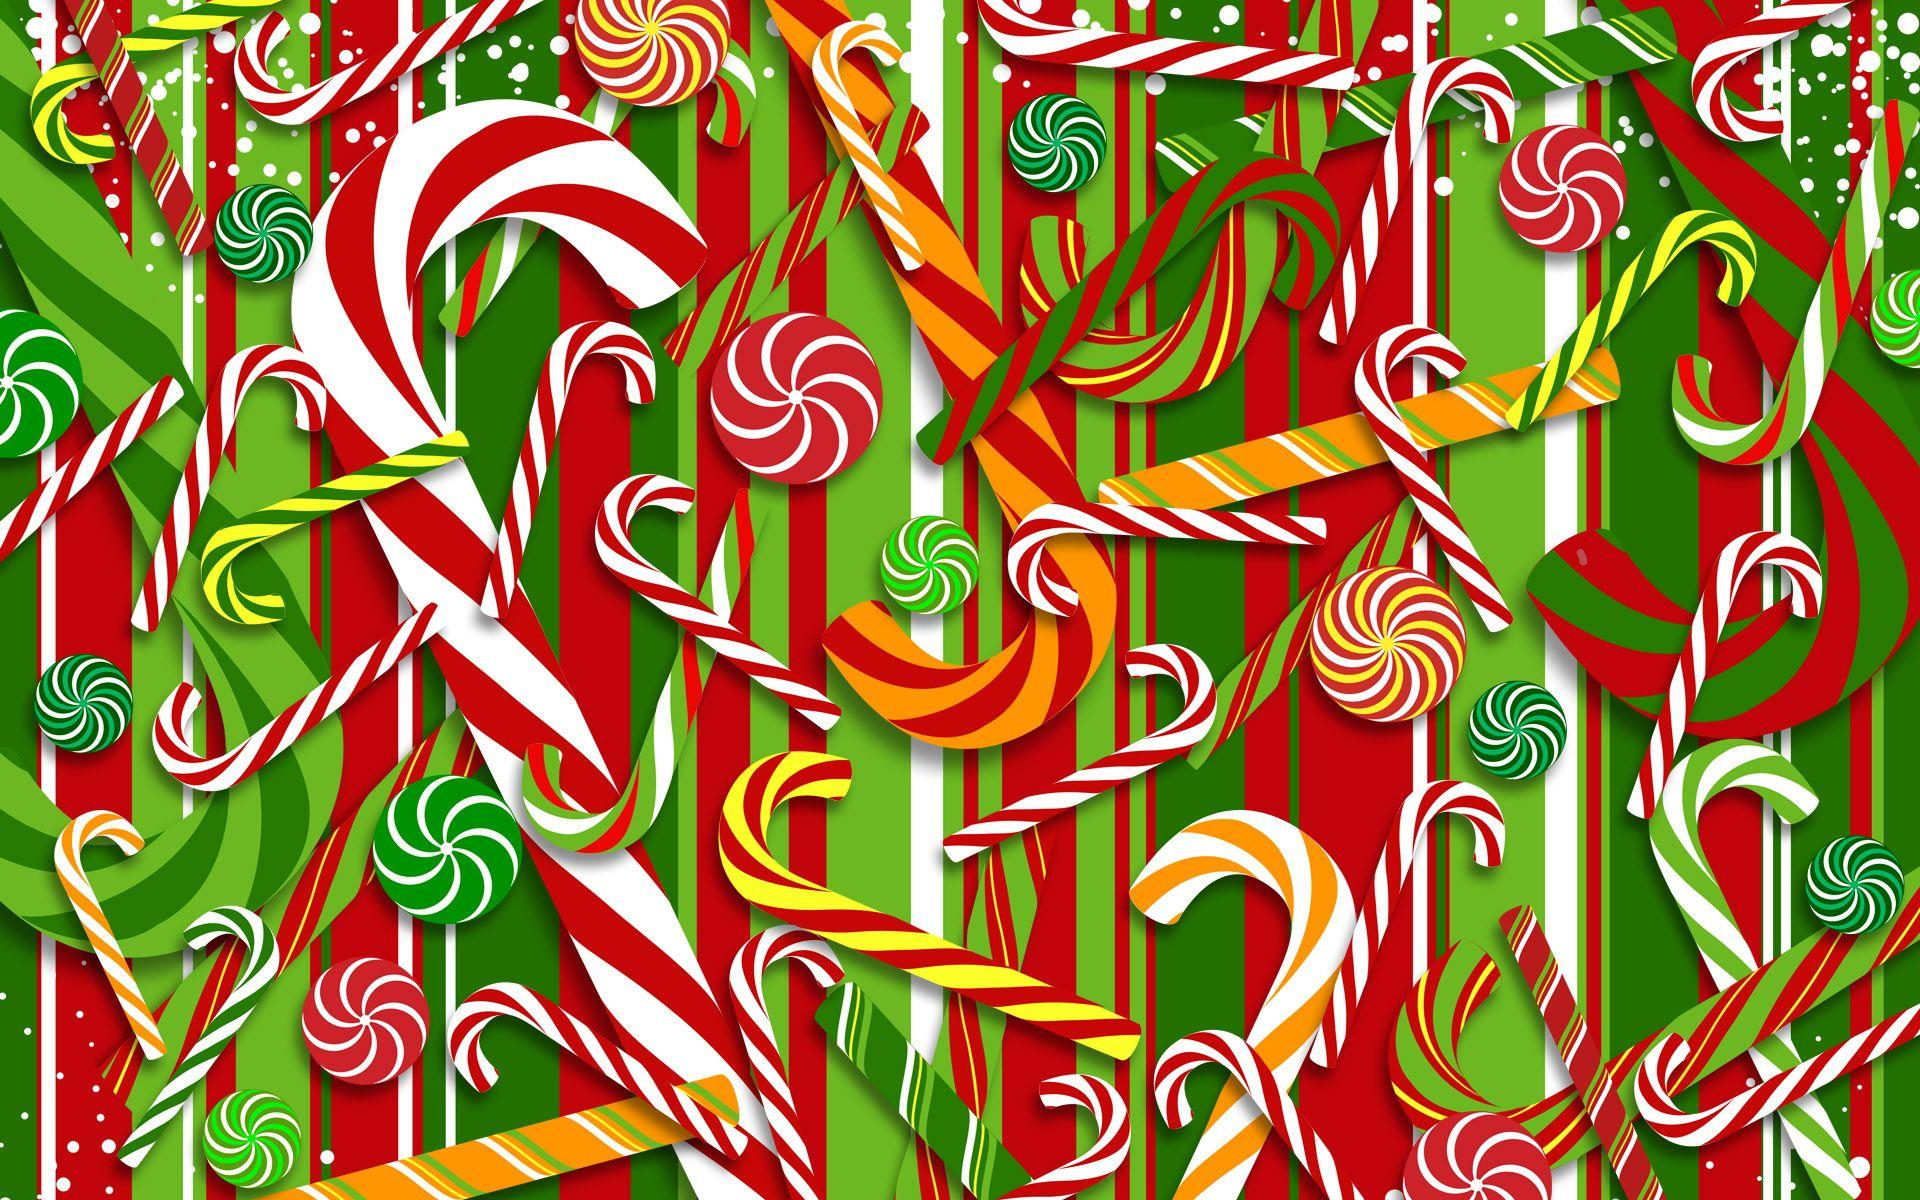 Download Candy Cane Wallpapers 38140 1920x1200 px High Resolution